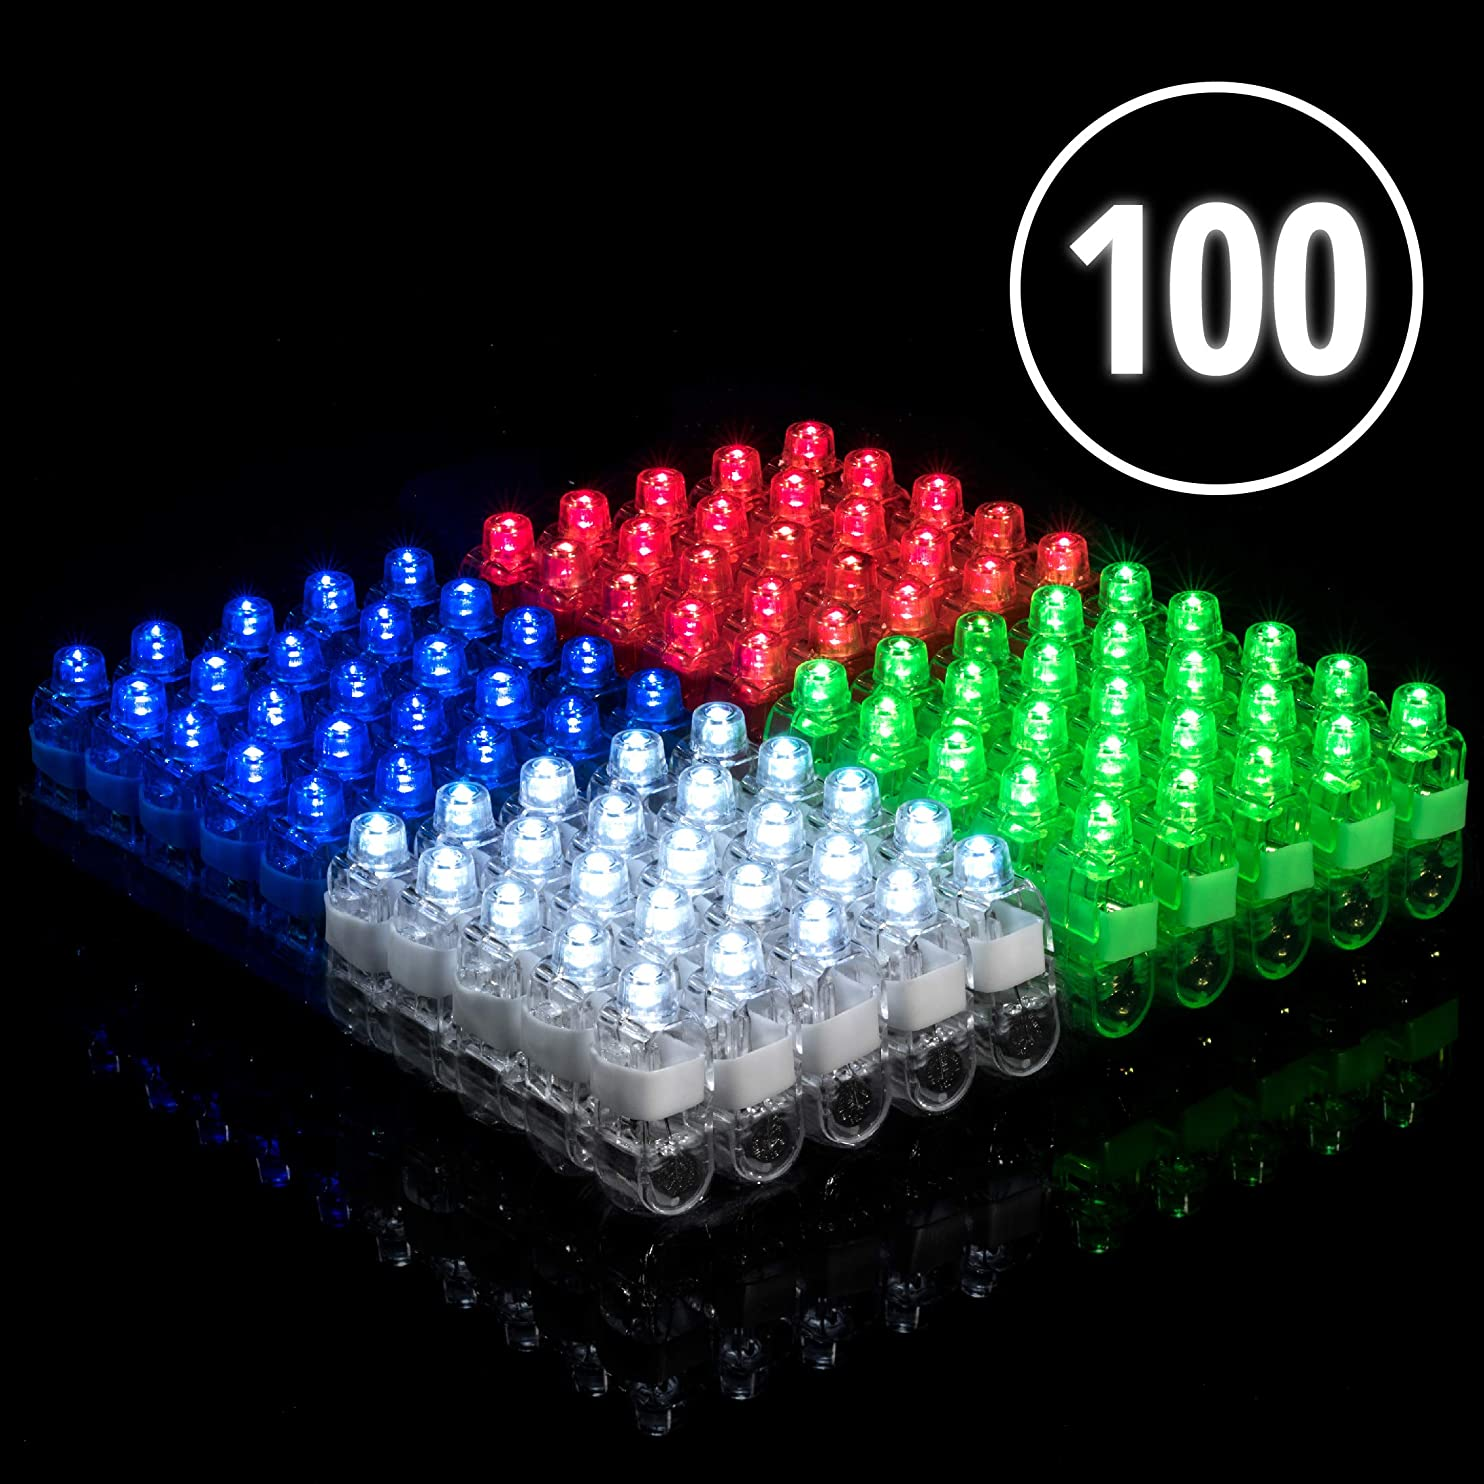 Light Up Rings LED Finger Lights 100pk – Flashing Glow Rings Bulk Party Favors for Kids and Adults, Glow in The Dark Party Supplies Rave Accessories nhlgiilxcgm80